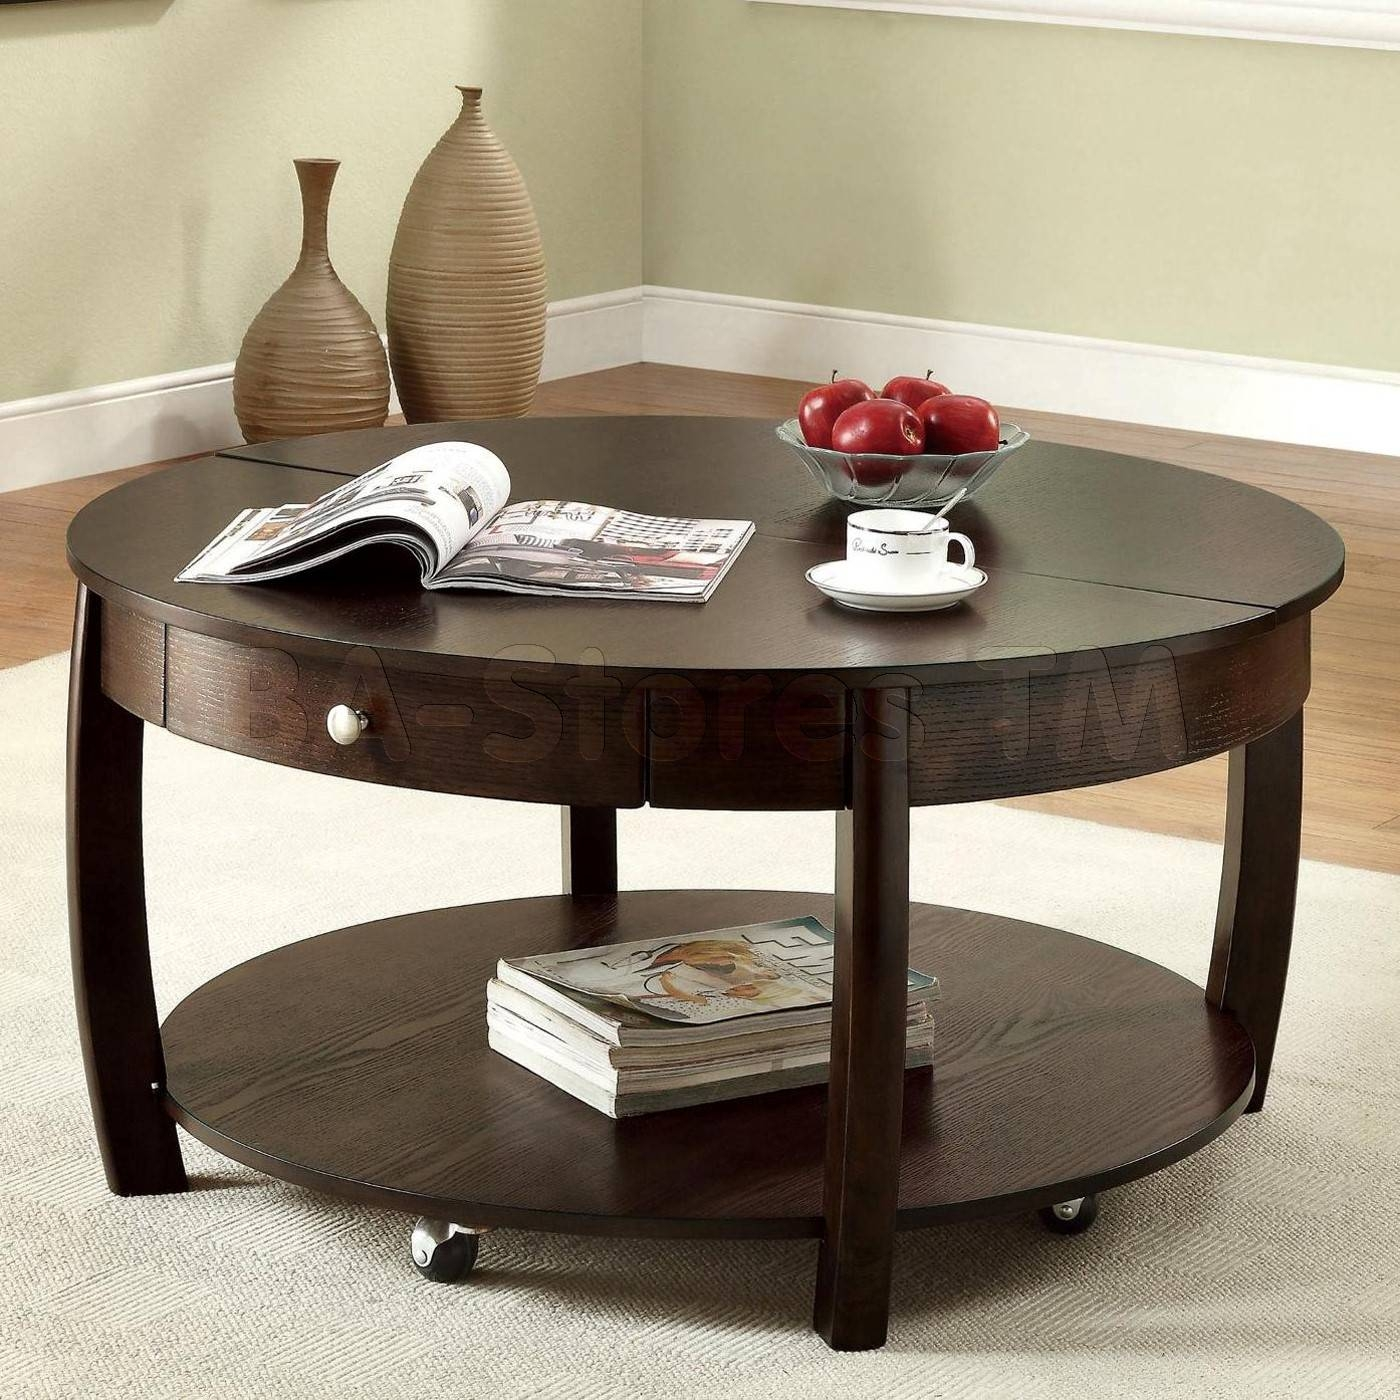 Furniture. Cool Small Coffee Table With Storage Design Ideas pertaining to Round Coffee Tables With Storages (Image 18 of 30)